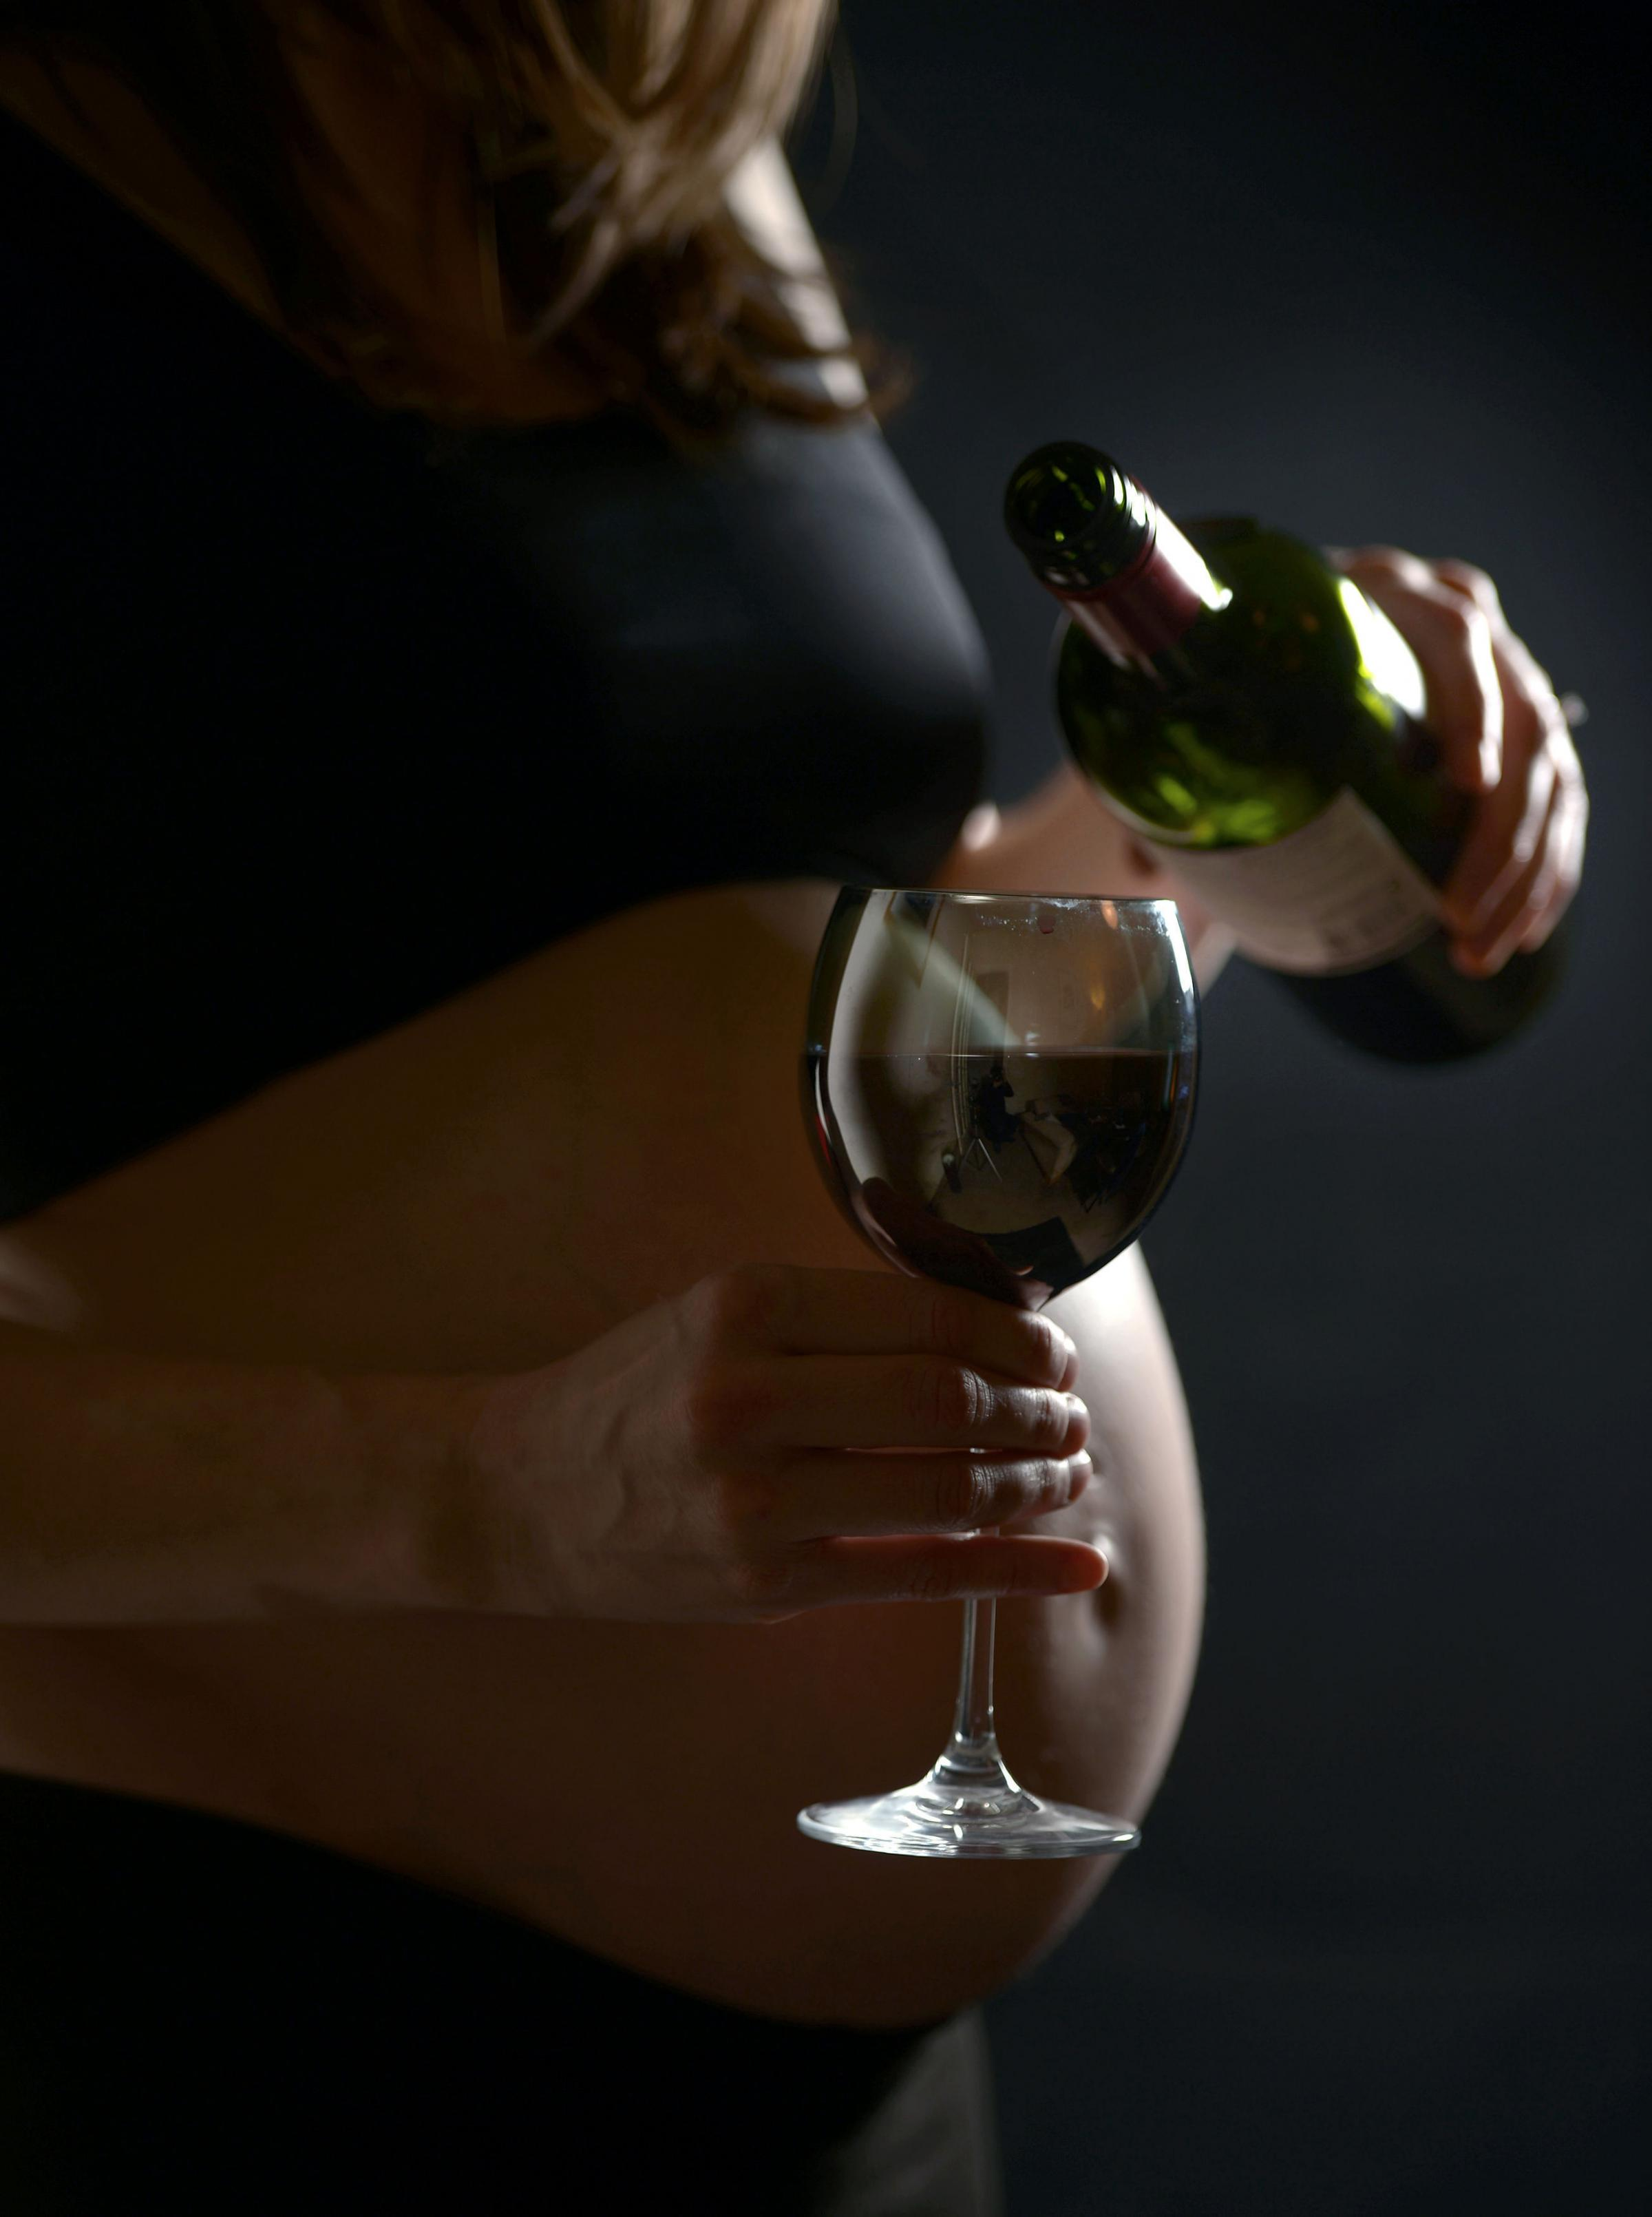 A pregnant woman with a glass of wine.